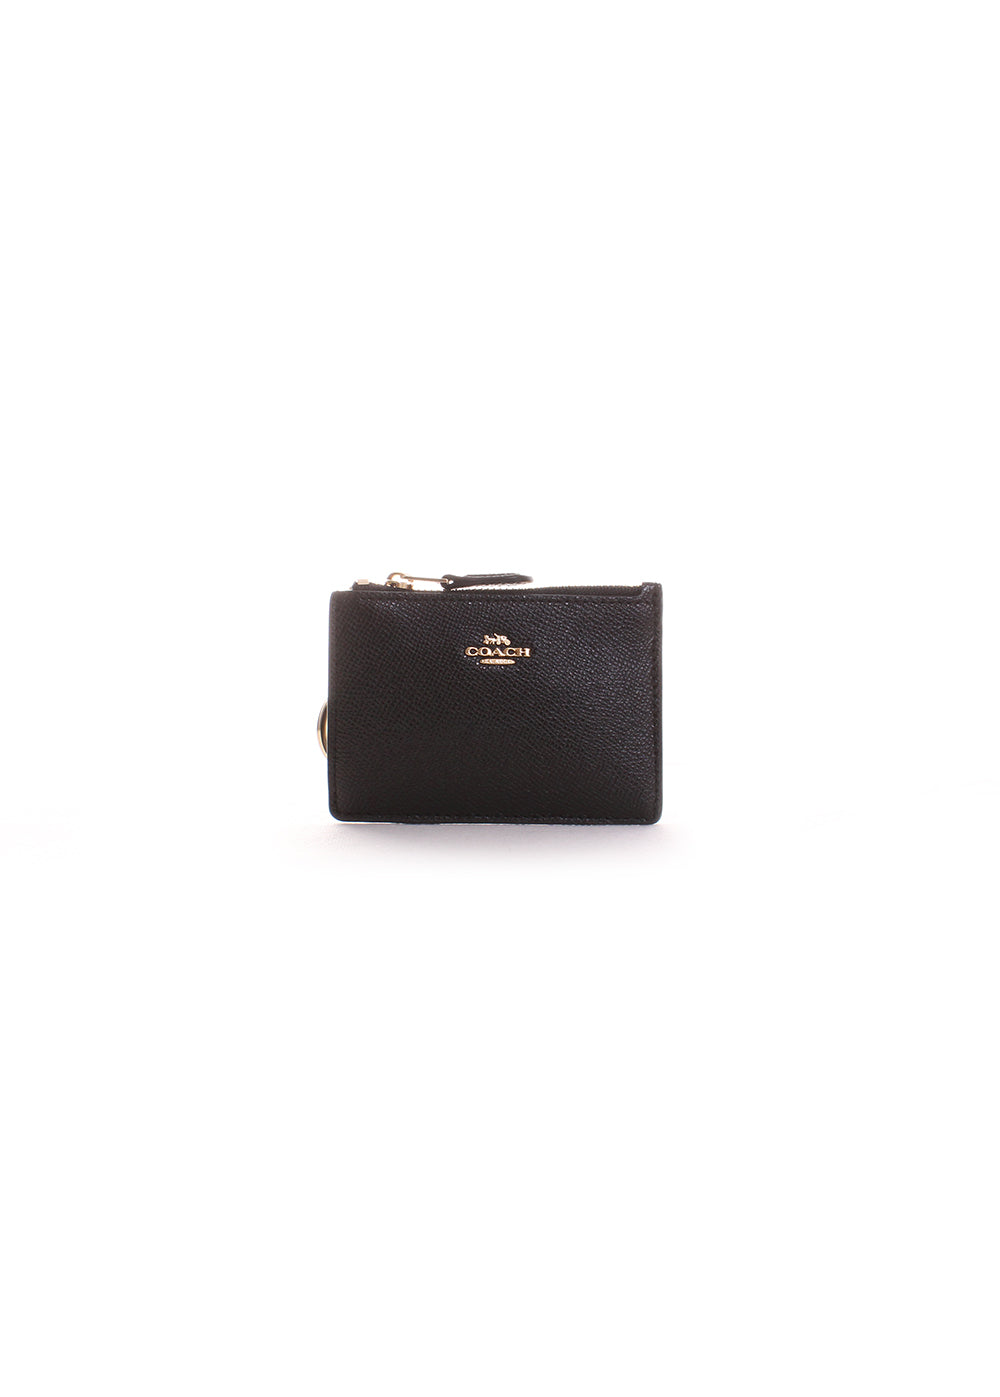 Coach Mini Skinny ID Case in Black/Light Gold